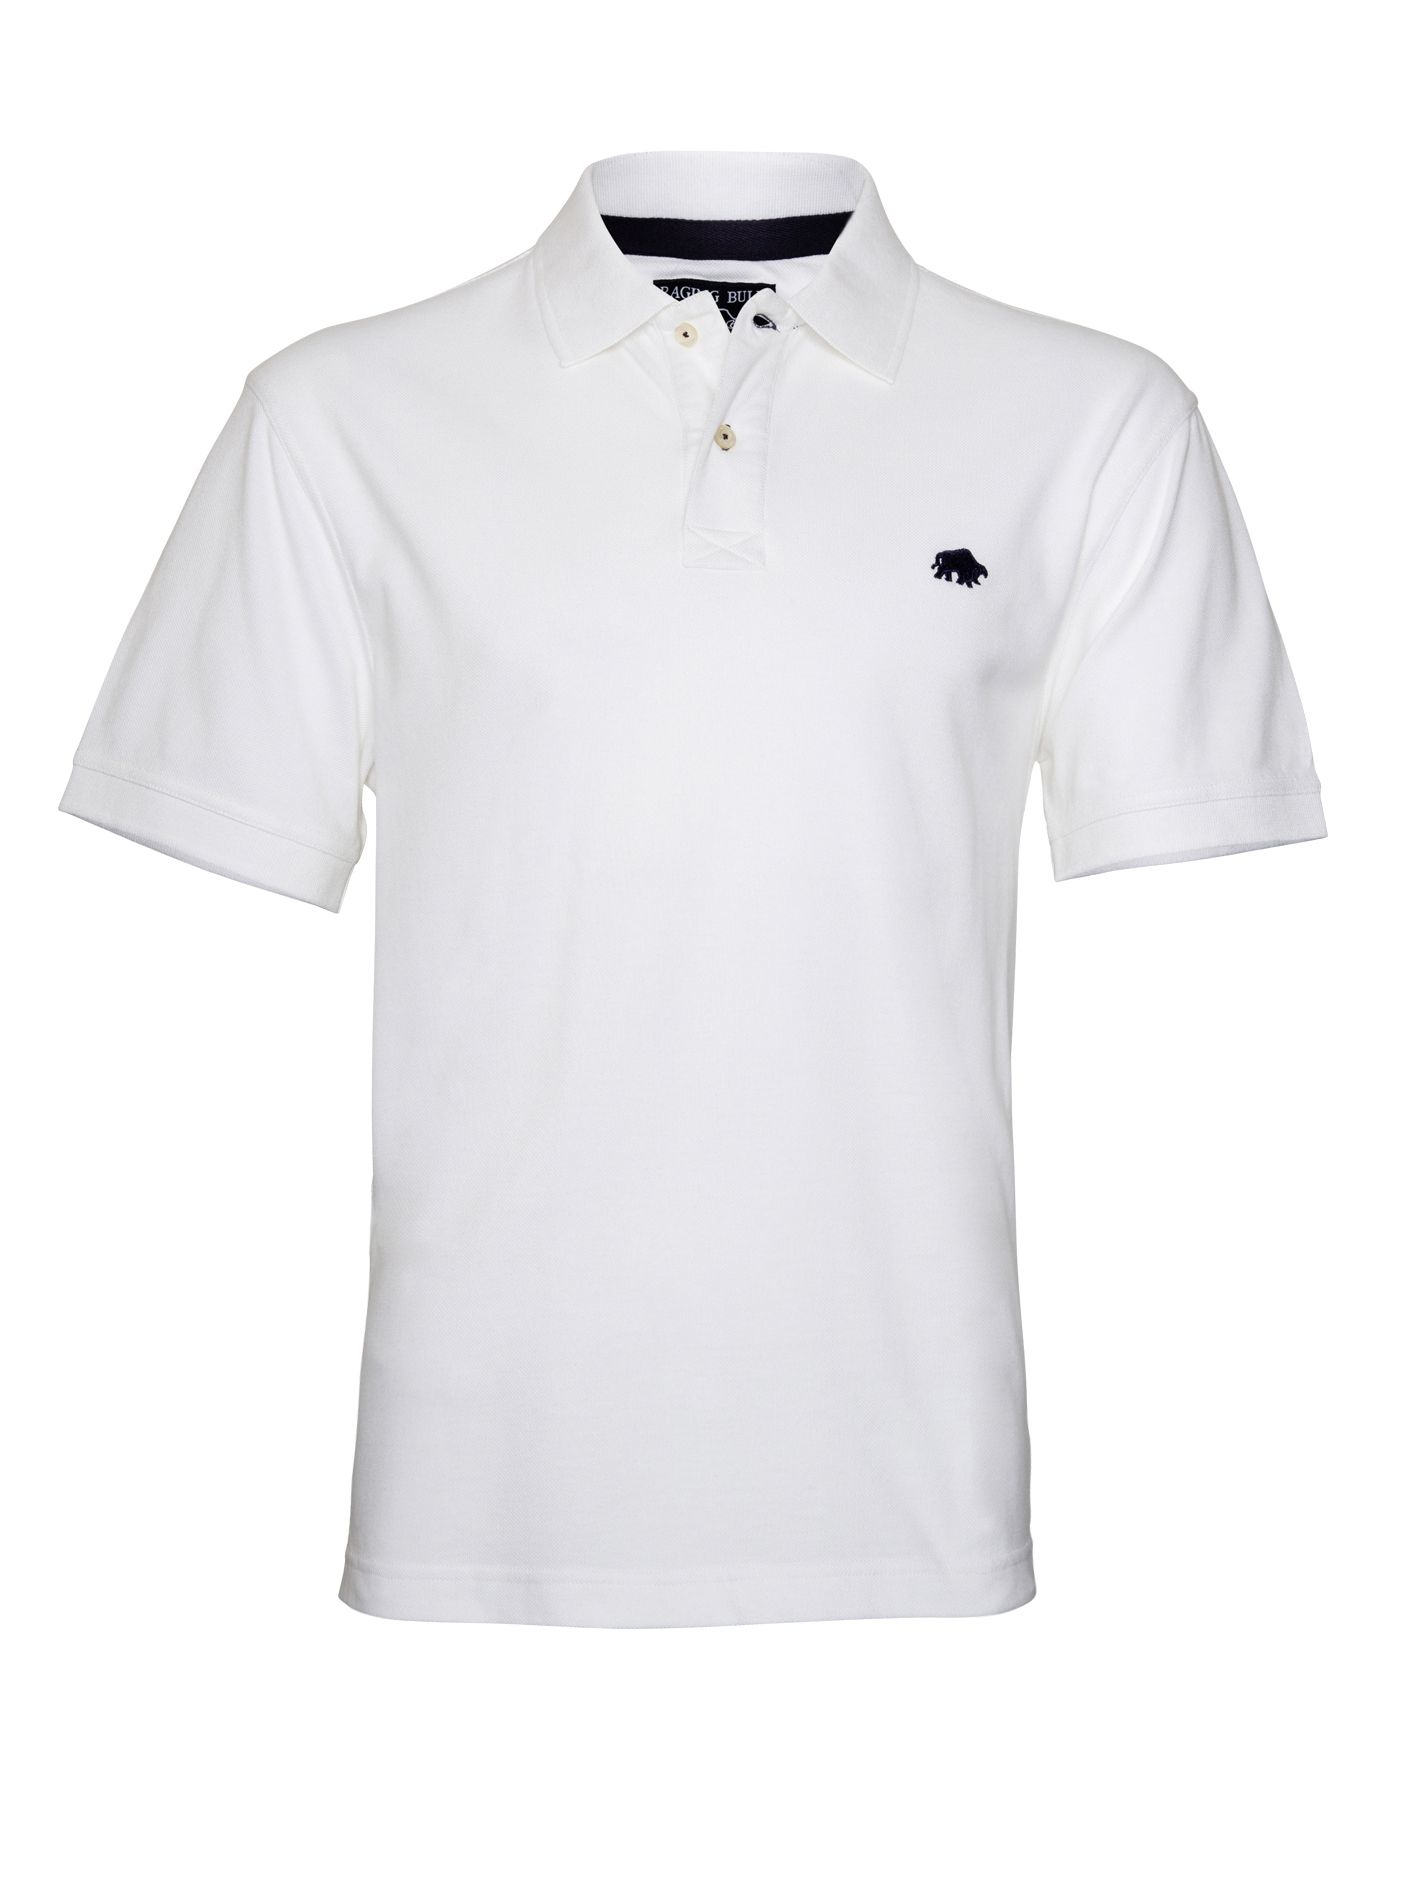 Raging bull big and tall new signature polo shirt in white for Big and tall custom polo shirts